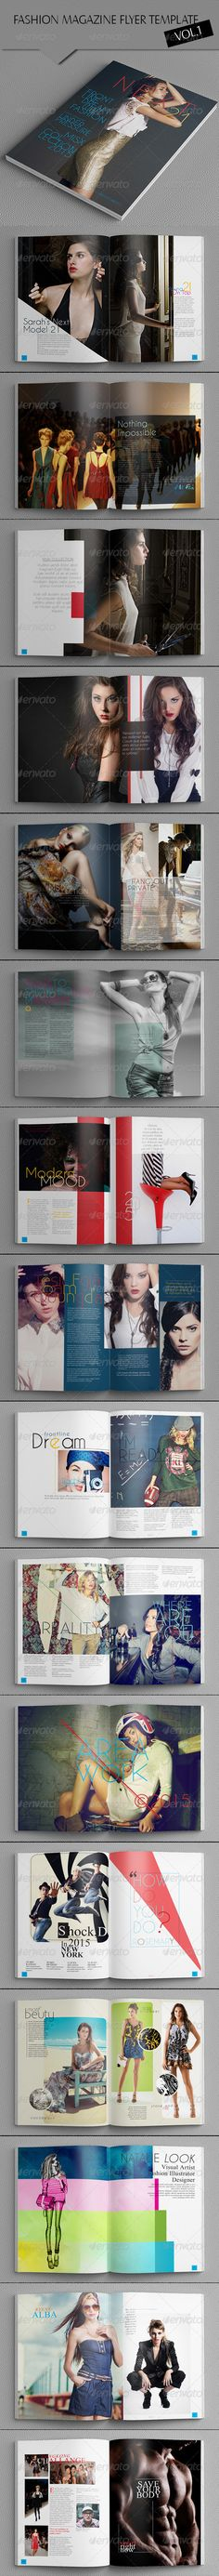 Indesign Fashion Magazine Template — InDesign INDD #fashion #business • Available here → https://graphicriver.net/item/indesign-fashion-magazine-template/5829082?ref=pxcr